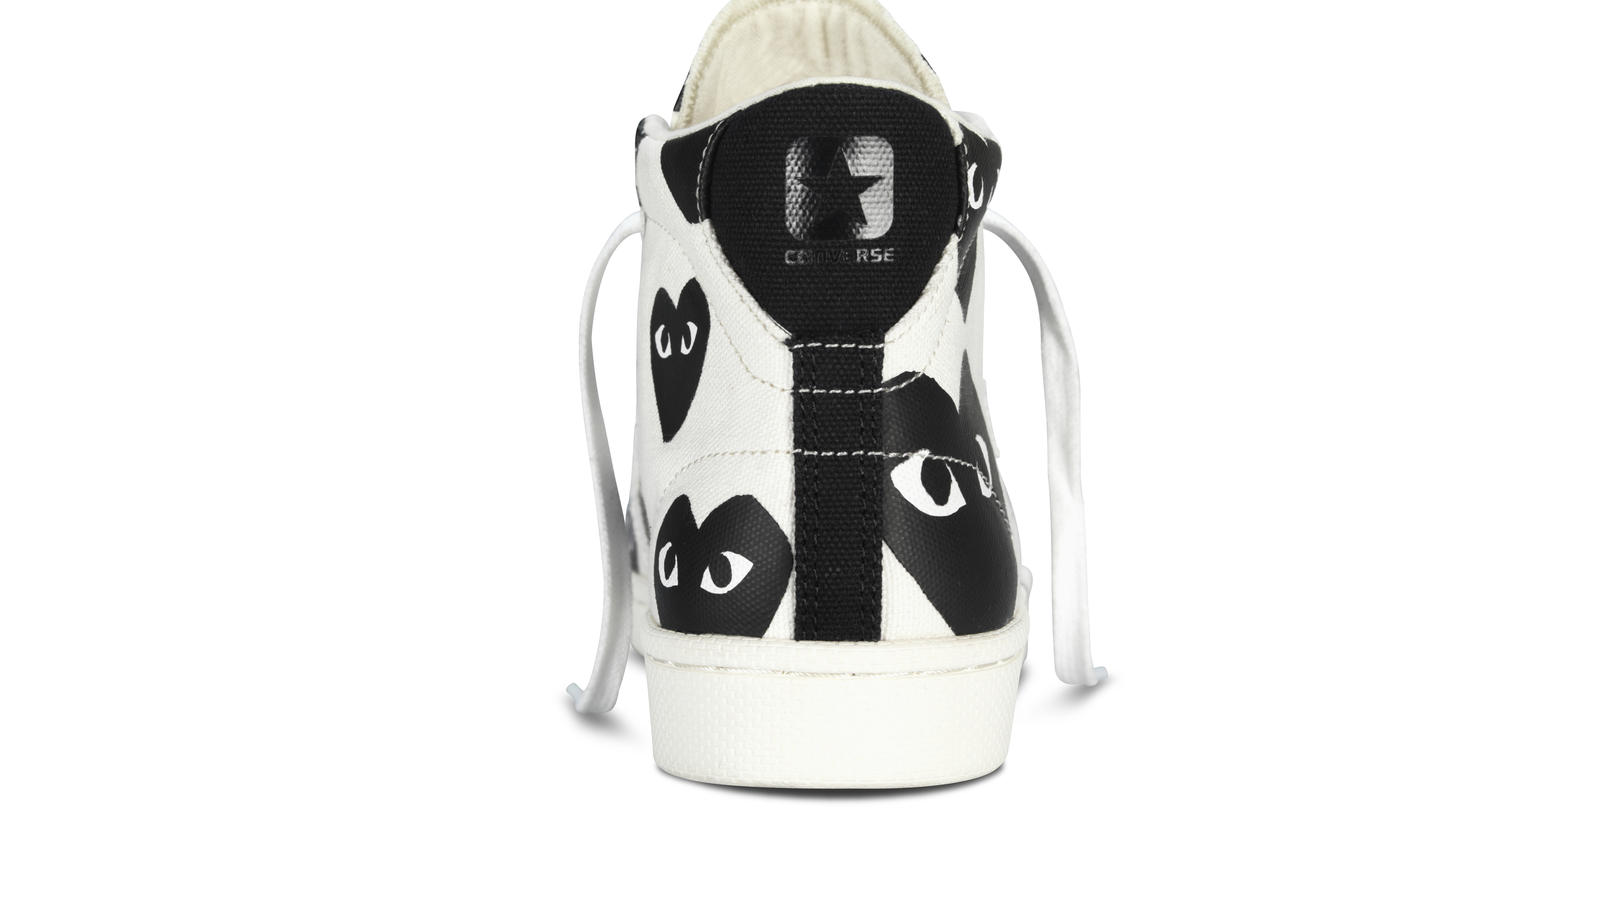 Converse X Cdg White Hi Back Original